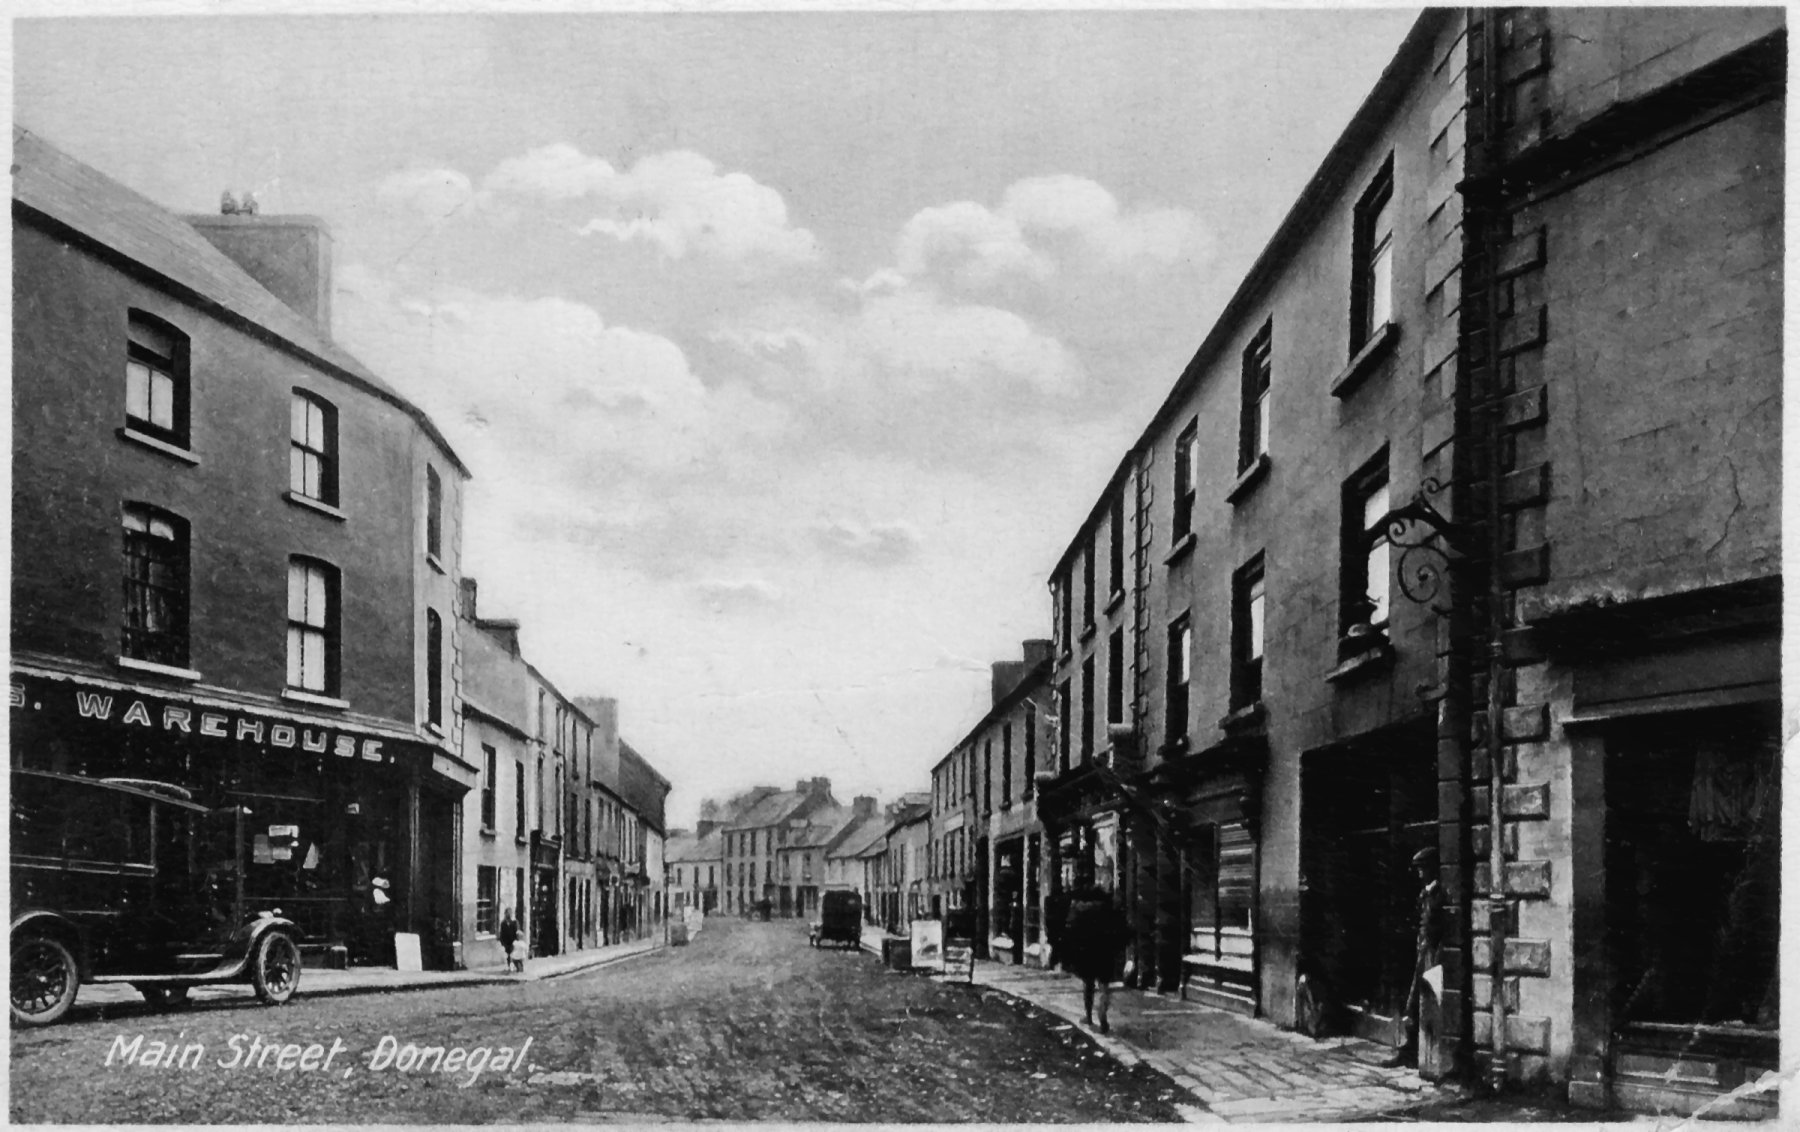 Old photo of Main Street, Donegal